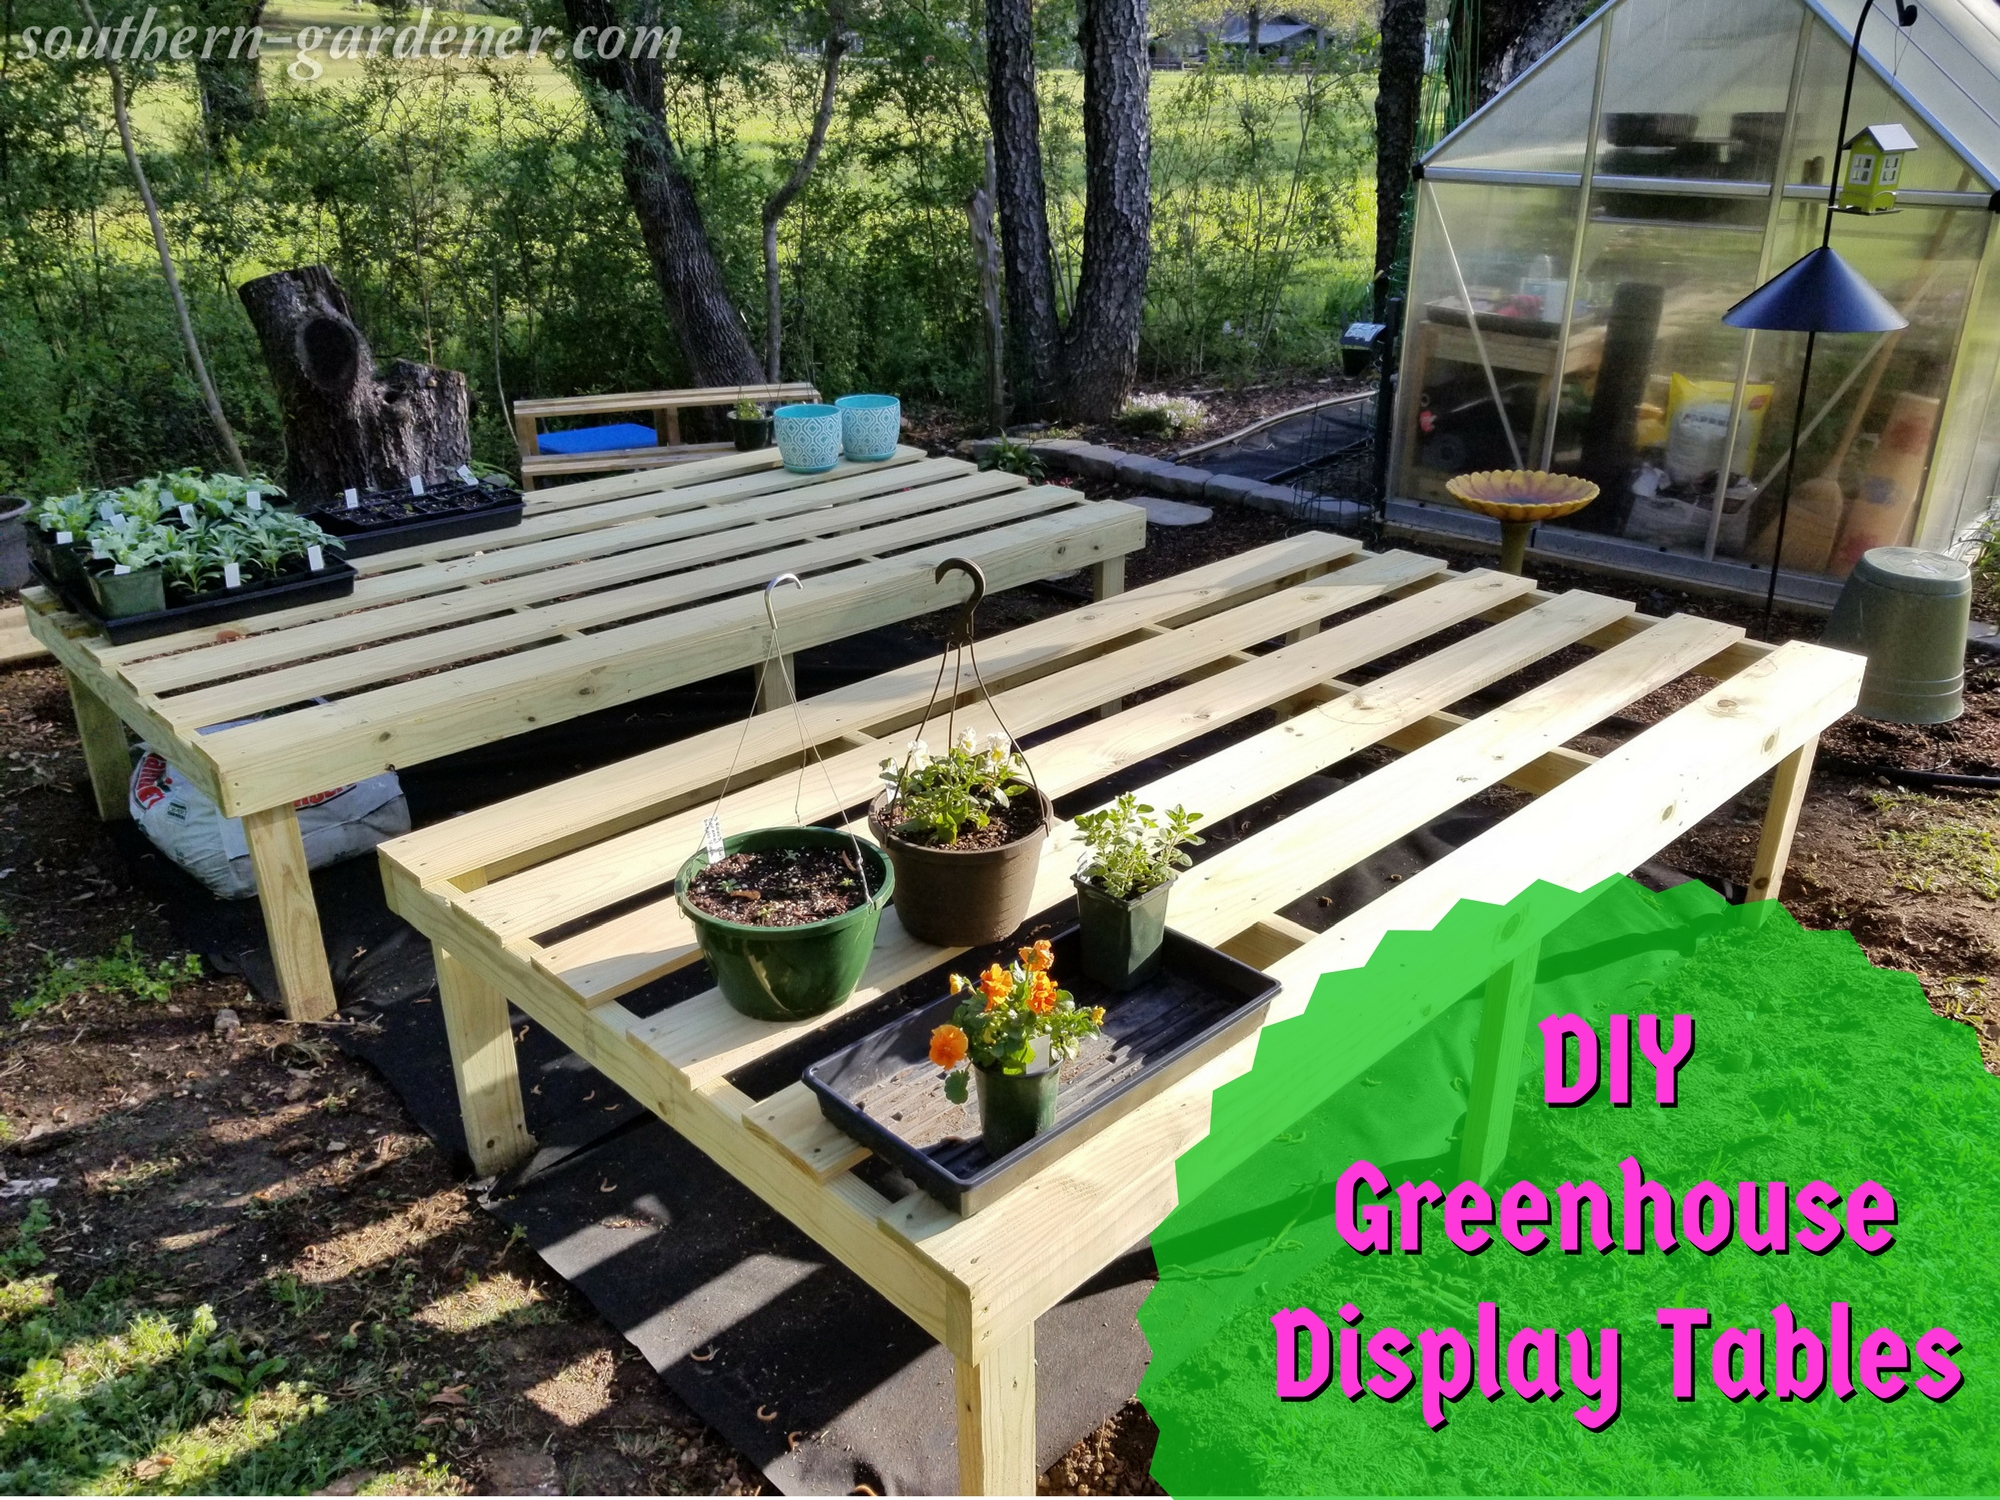 Display Tables For Greenhouse